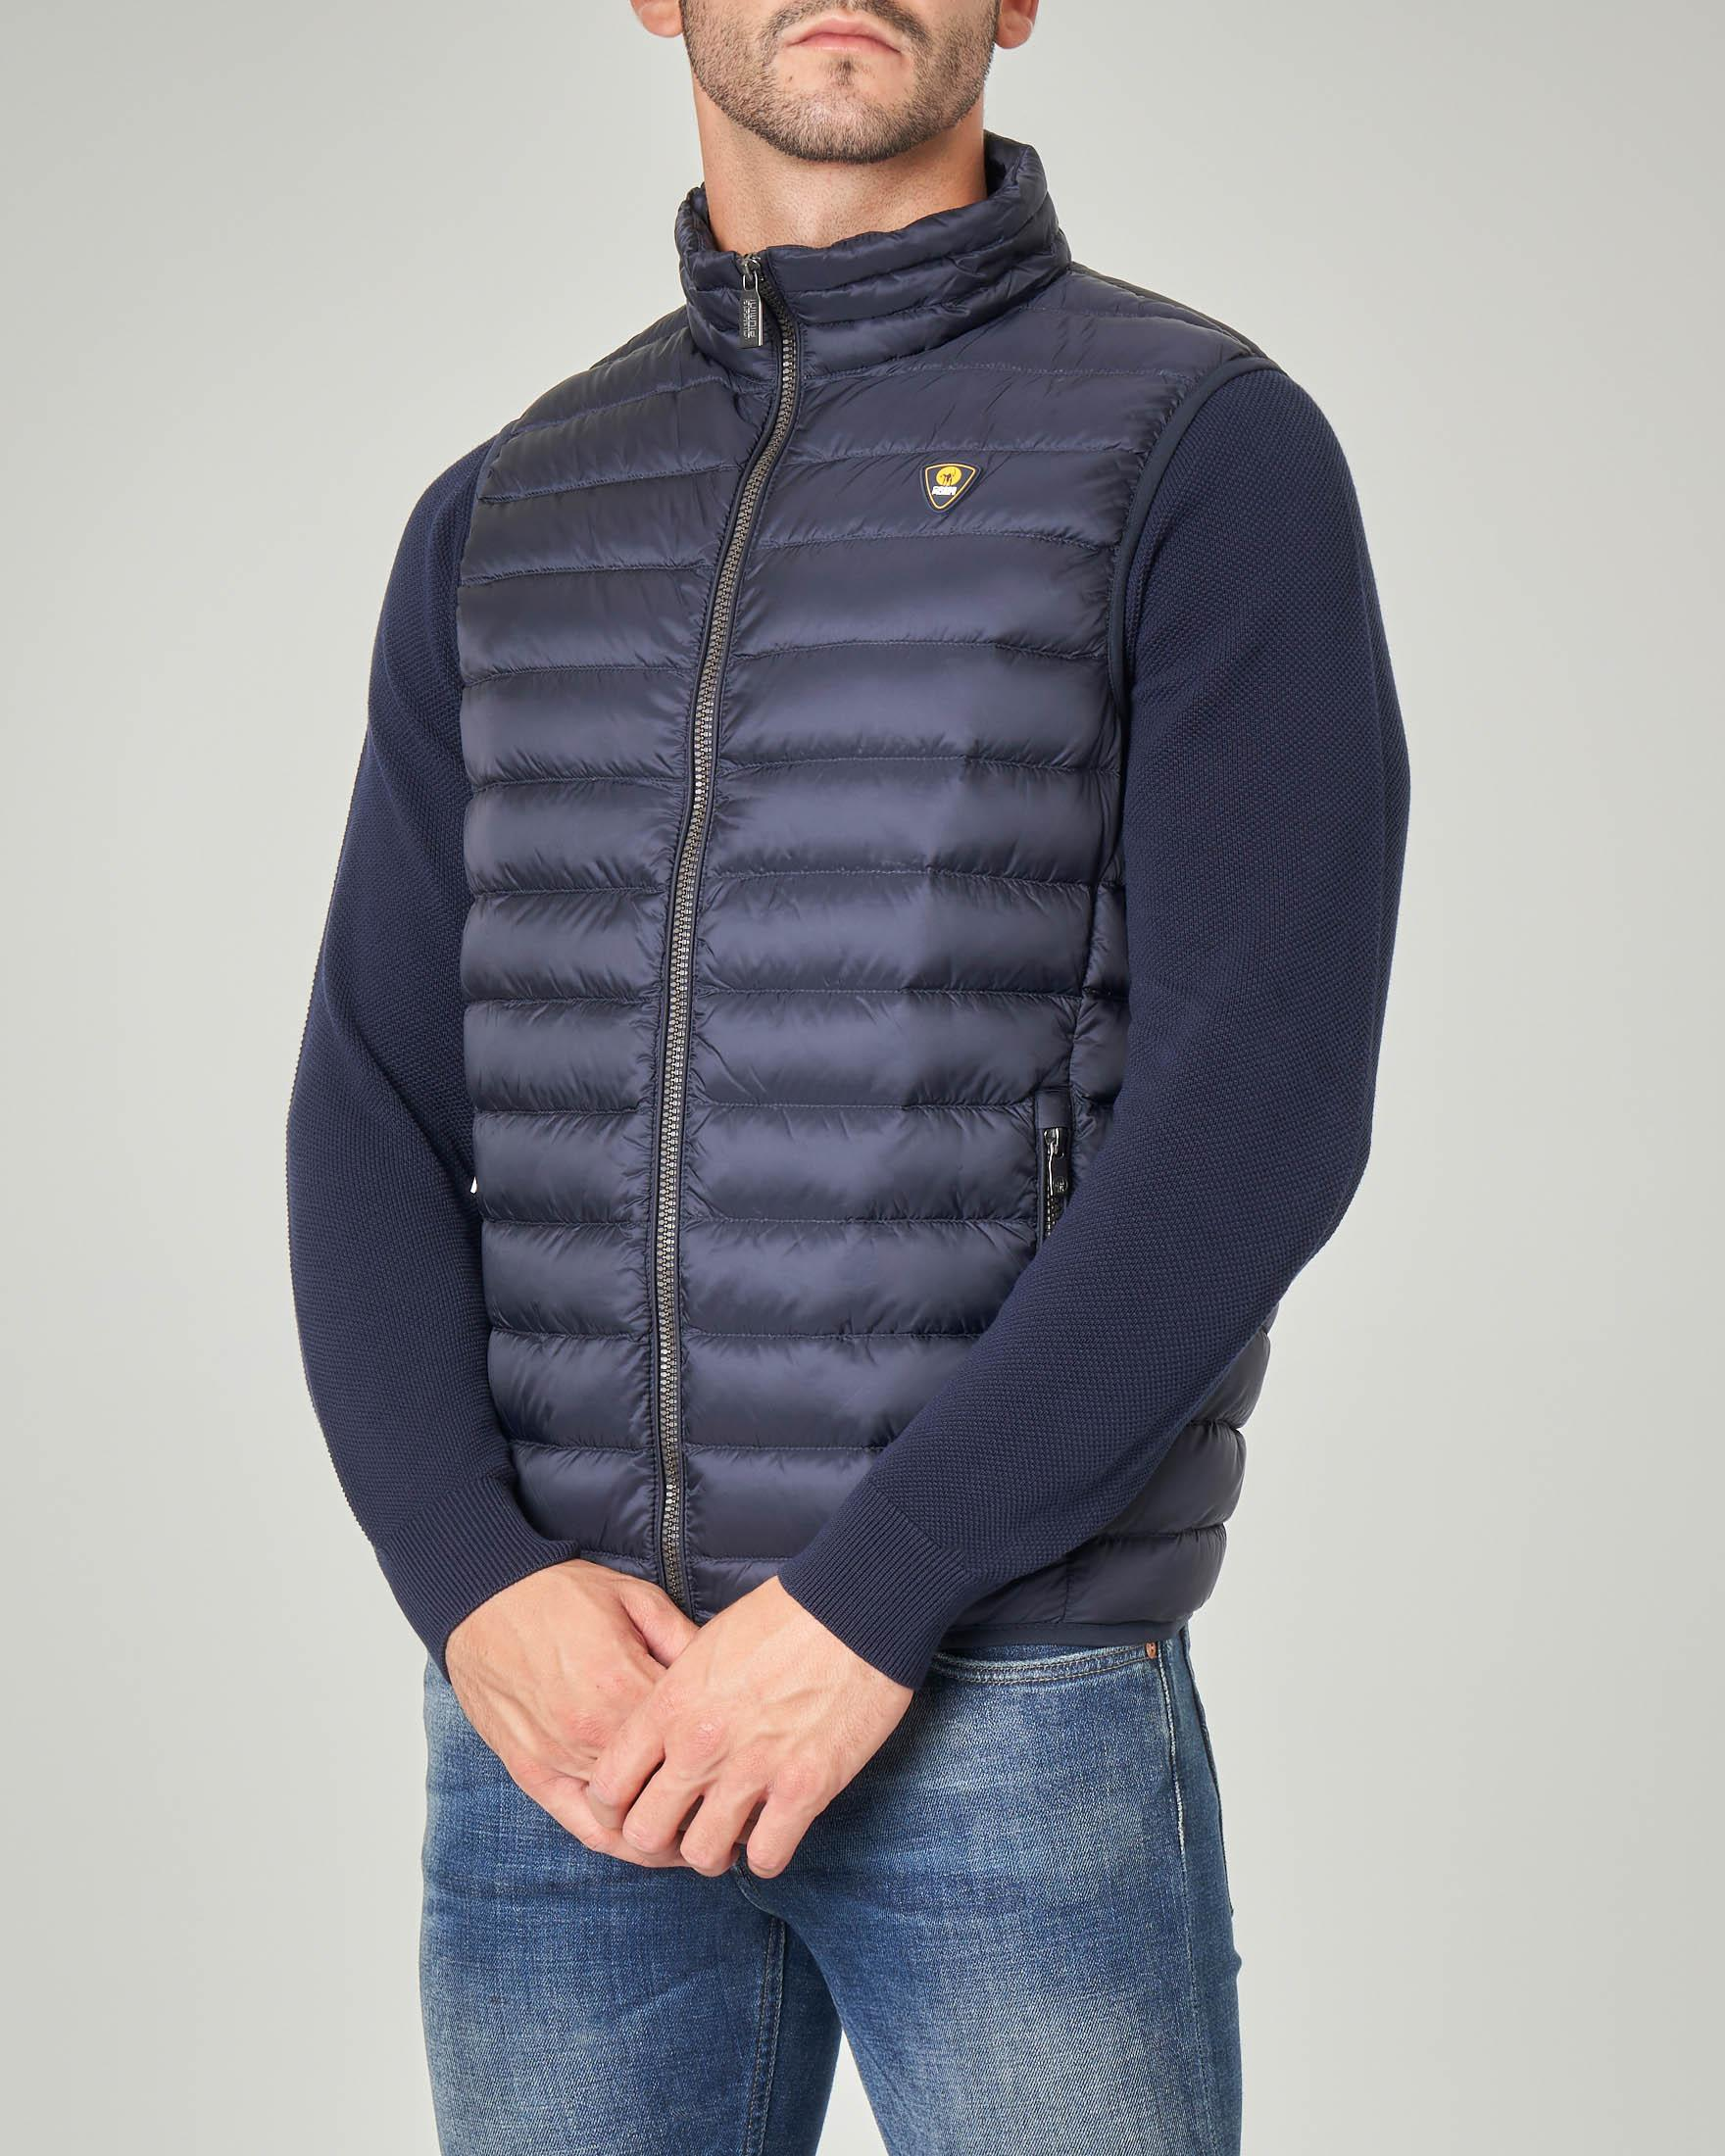 Gilet blu imbottito in piuma 800fill power